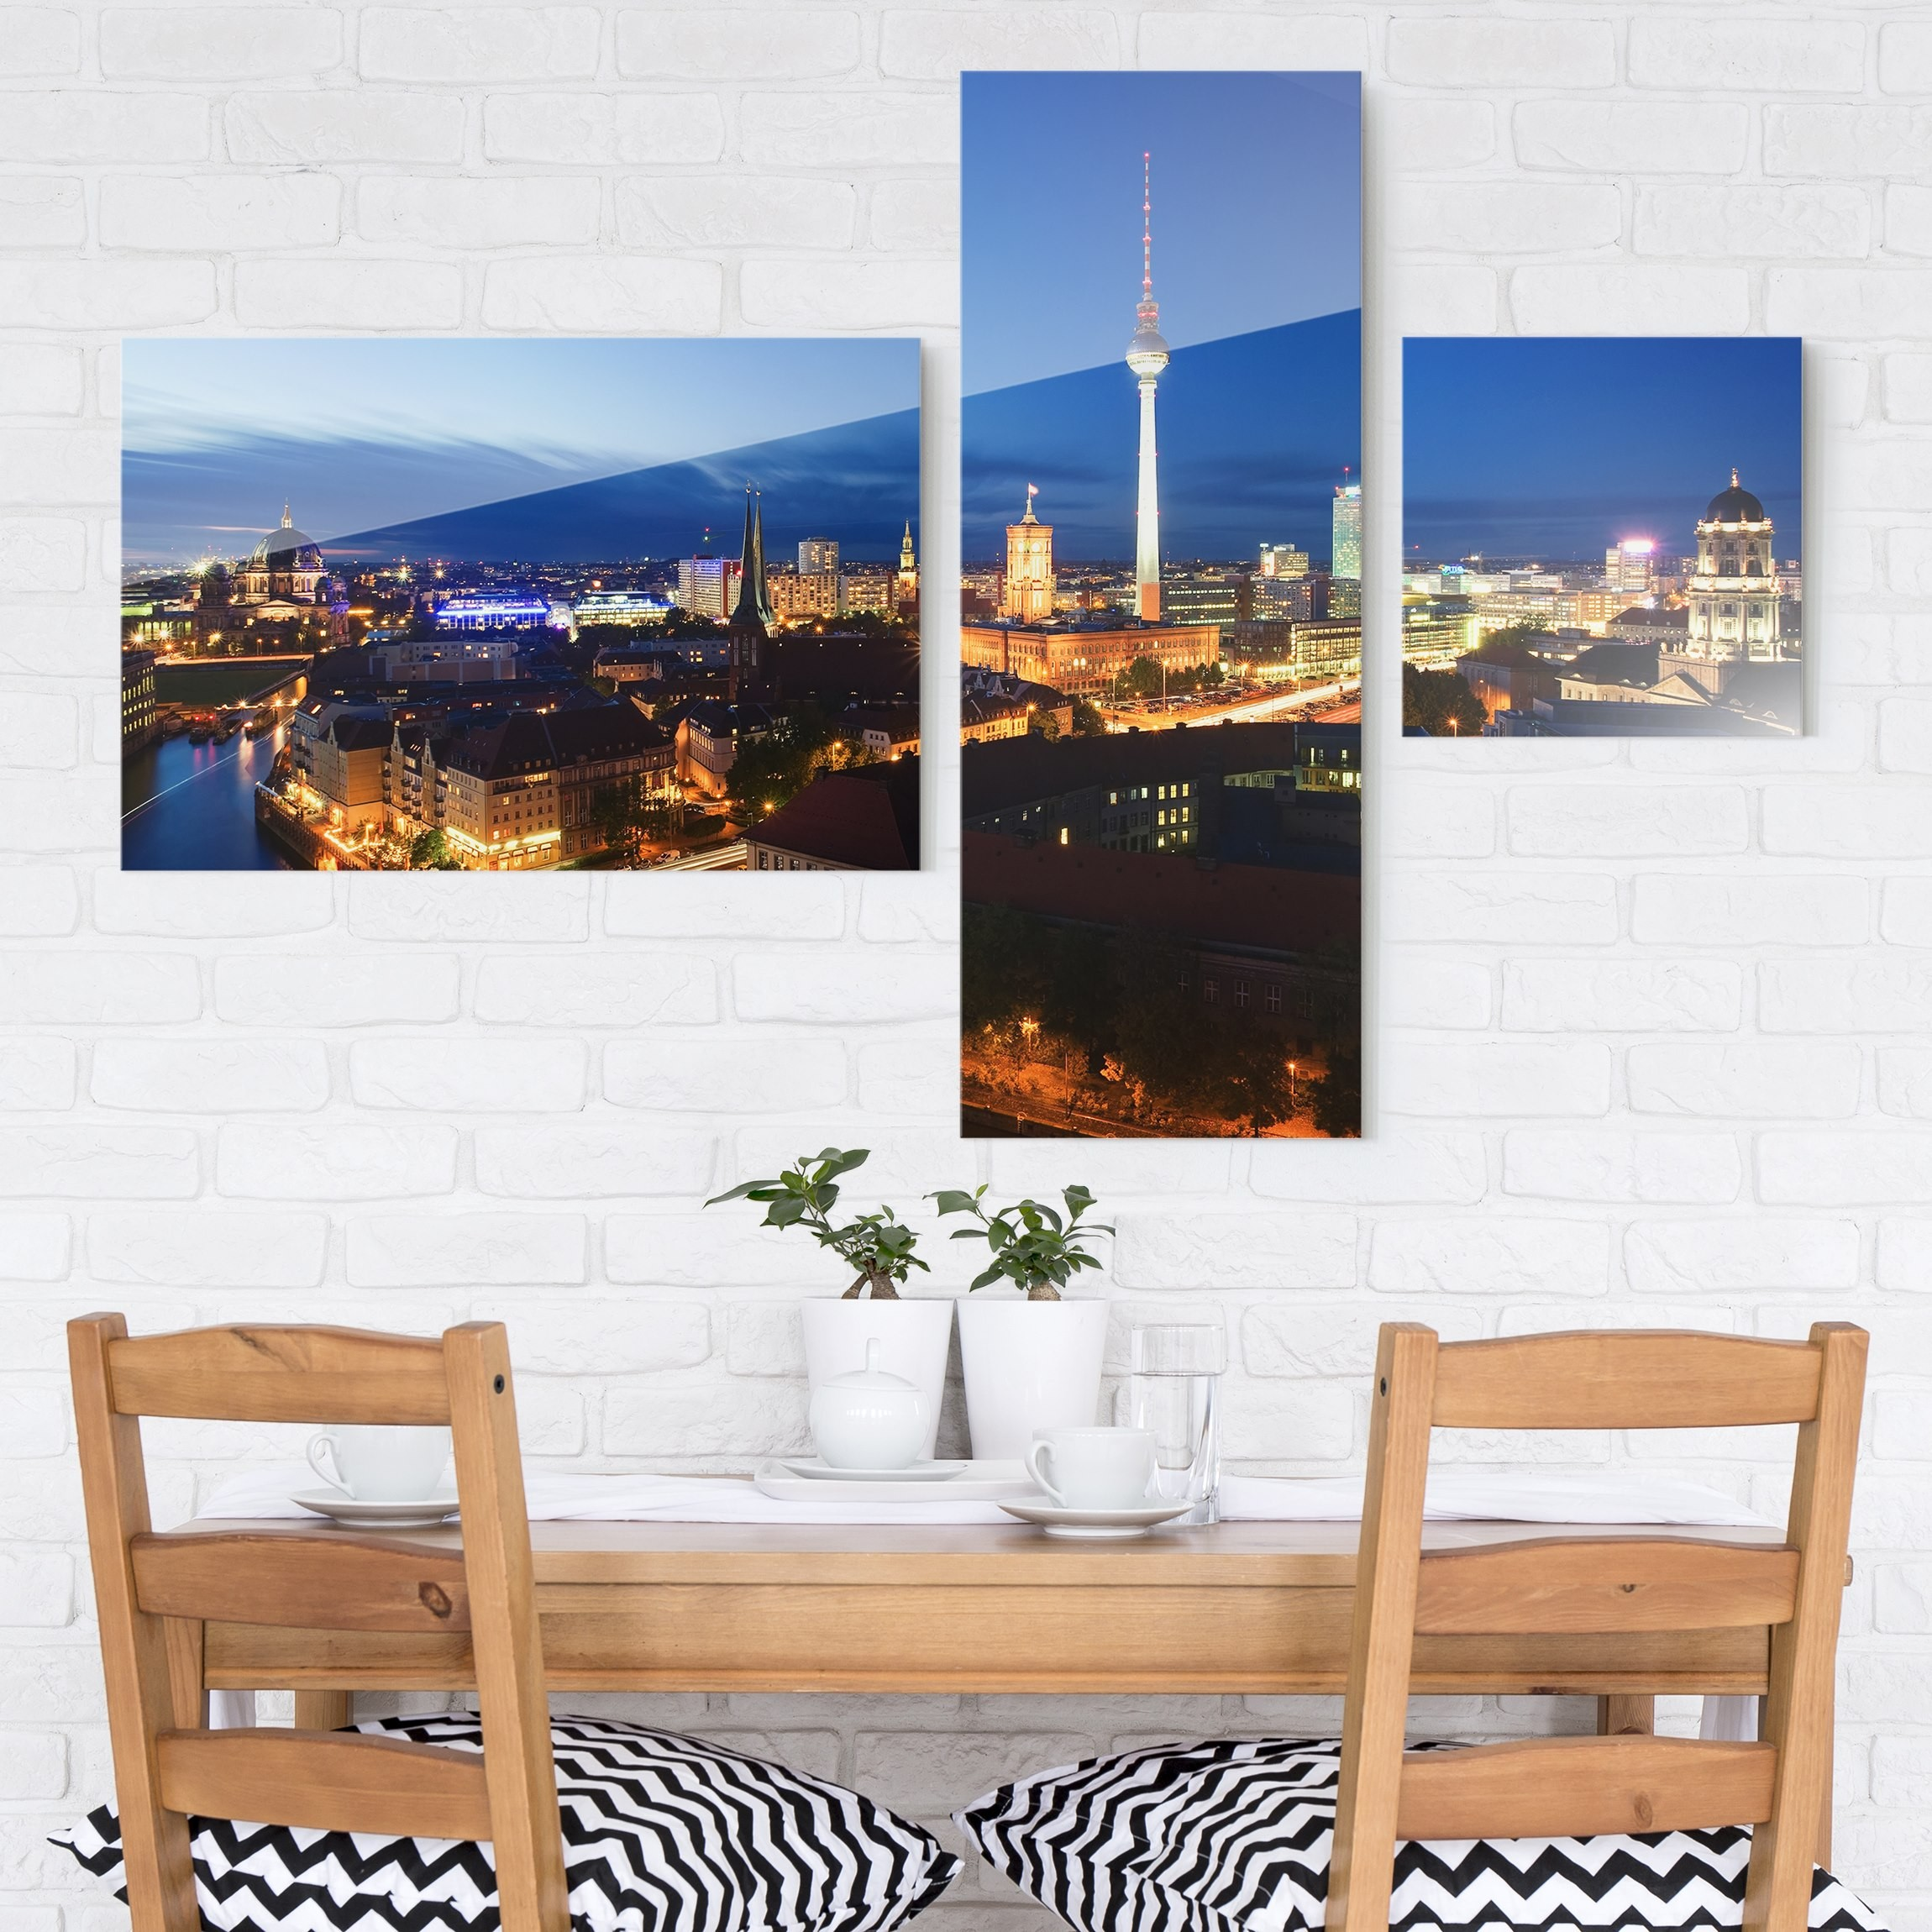 glasbild mehrteilig fernsehturm bei nacht collage 3 teilig. Black Bedroom Furniture Sets. Home Design Ideas